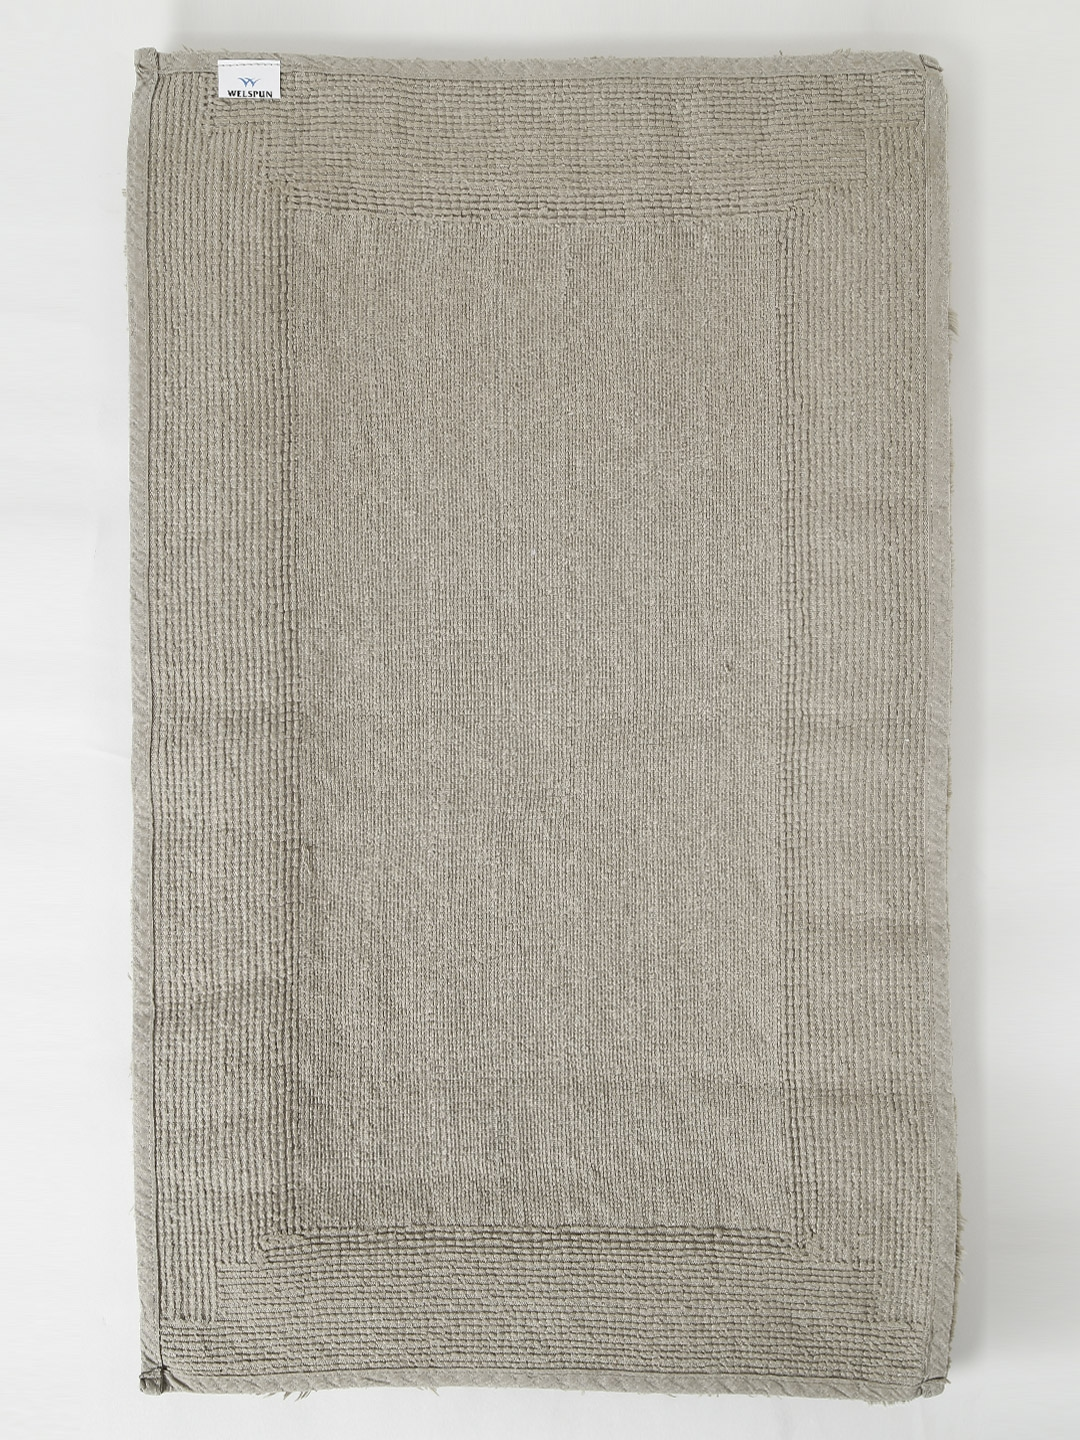 buy spaces taupe hygro cotton rectangular bath rug - bath rugs for